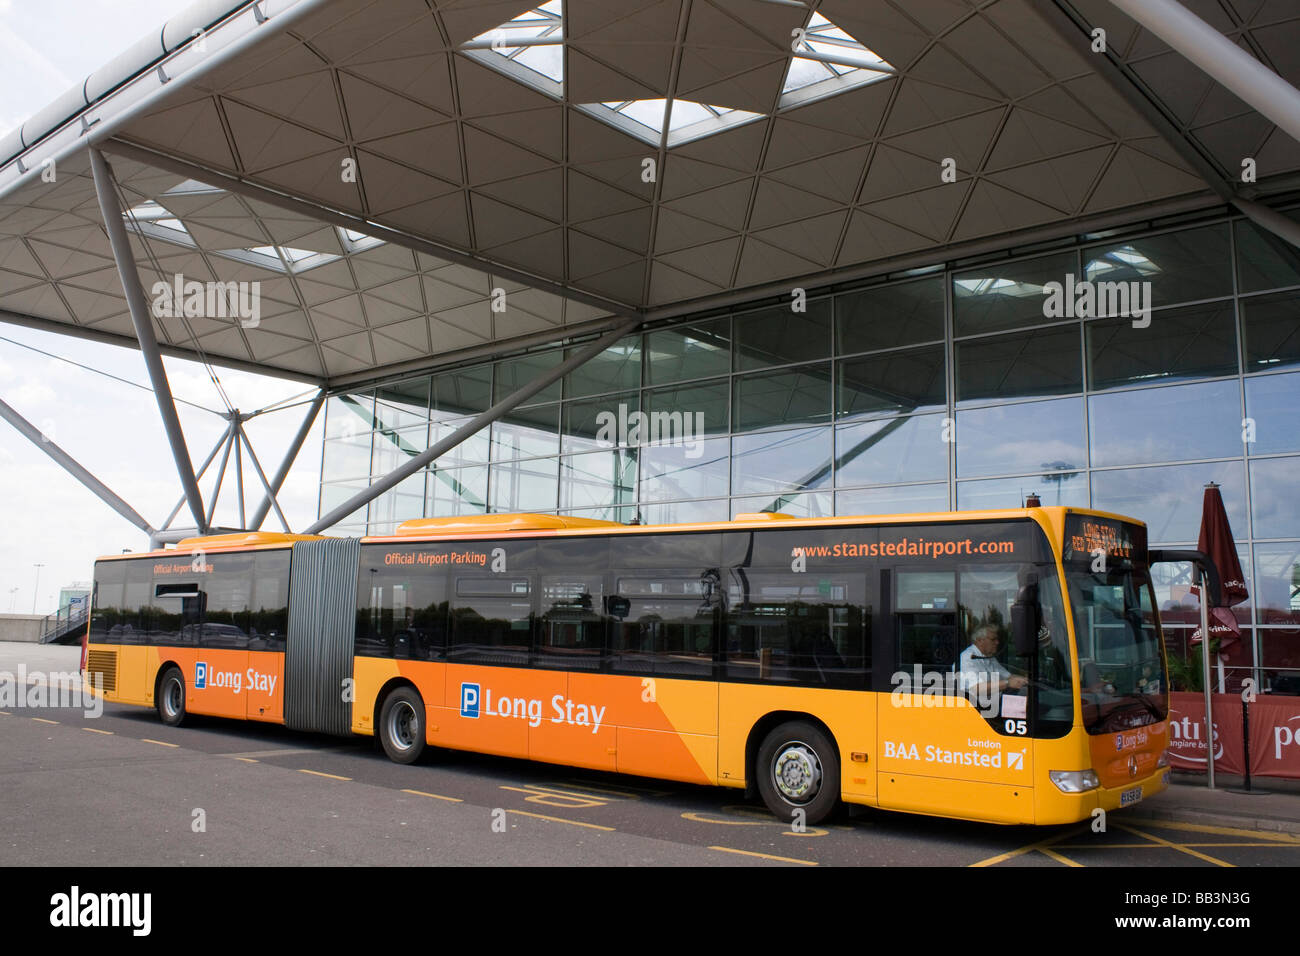 Stansted Long Stay >> Long Stay Transport Bus Stansted Airport Arrival And Departure Stock